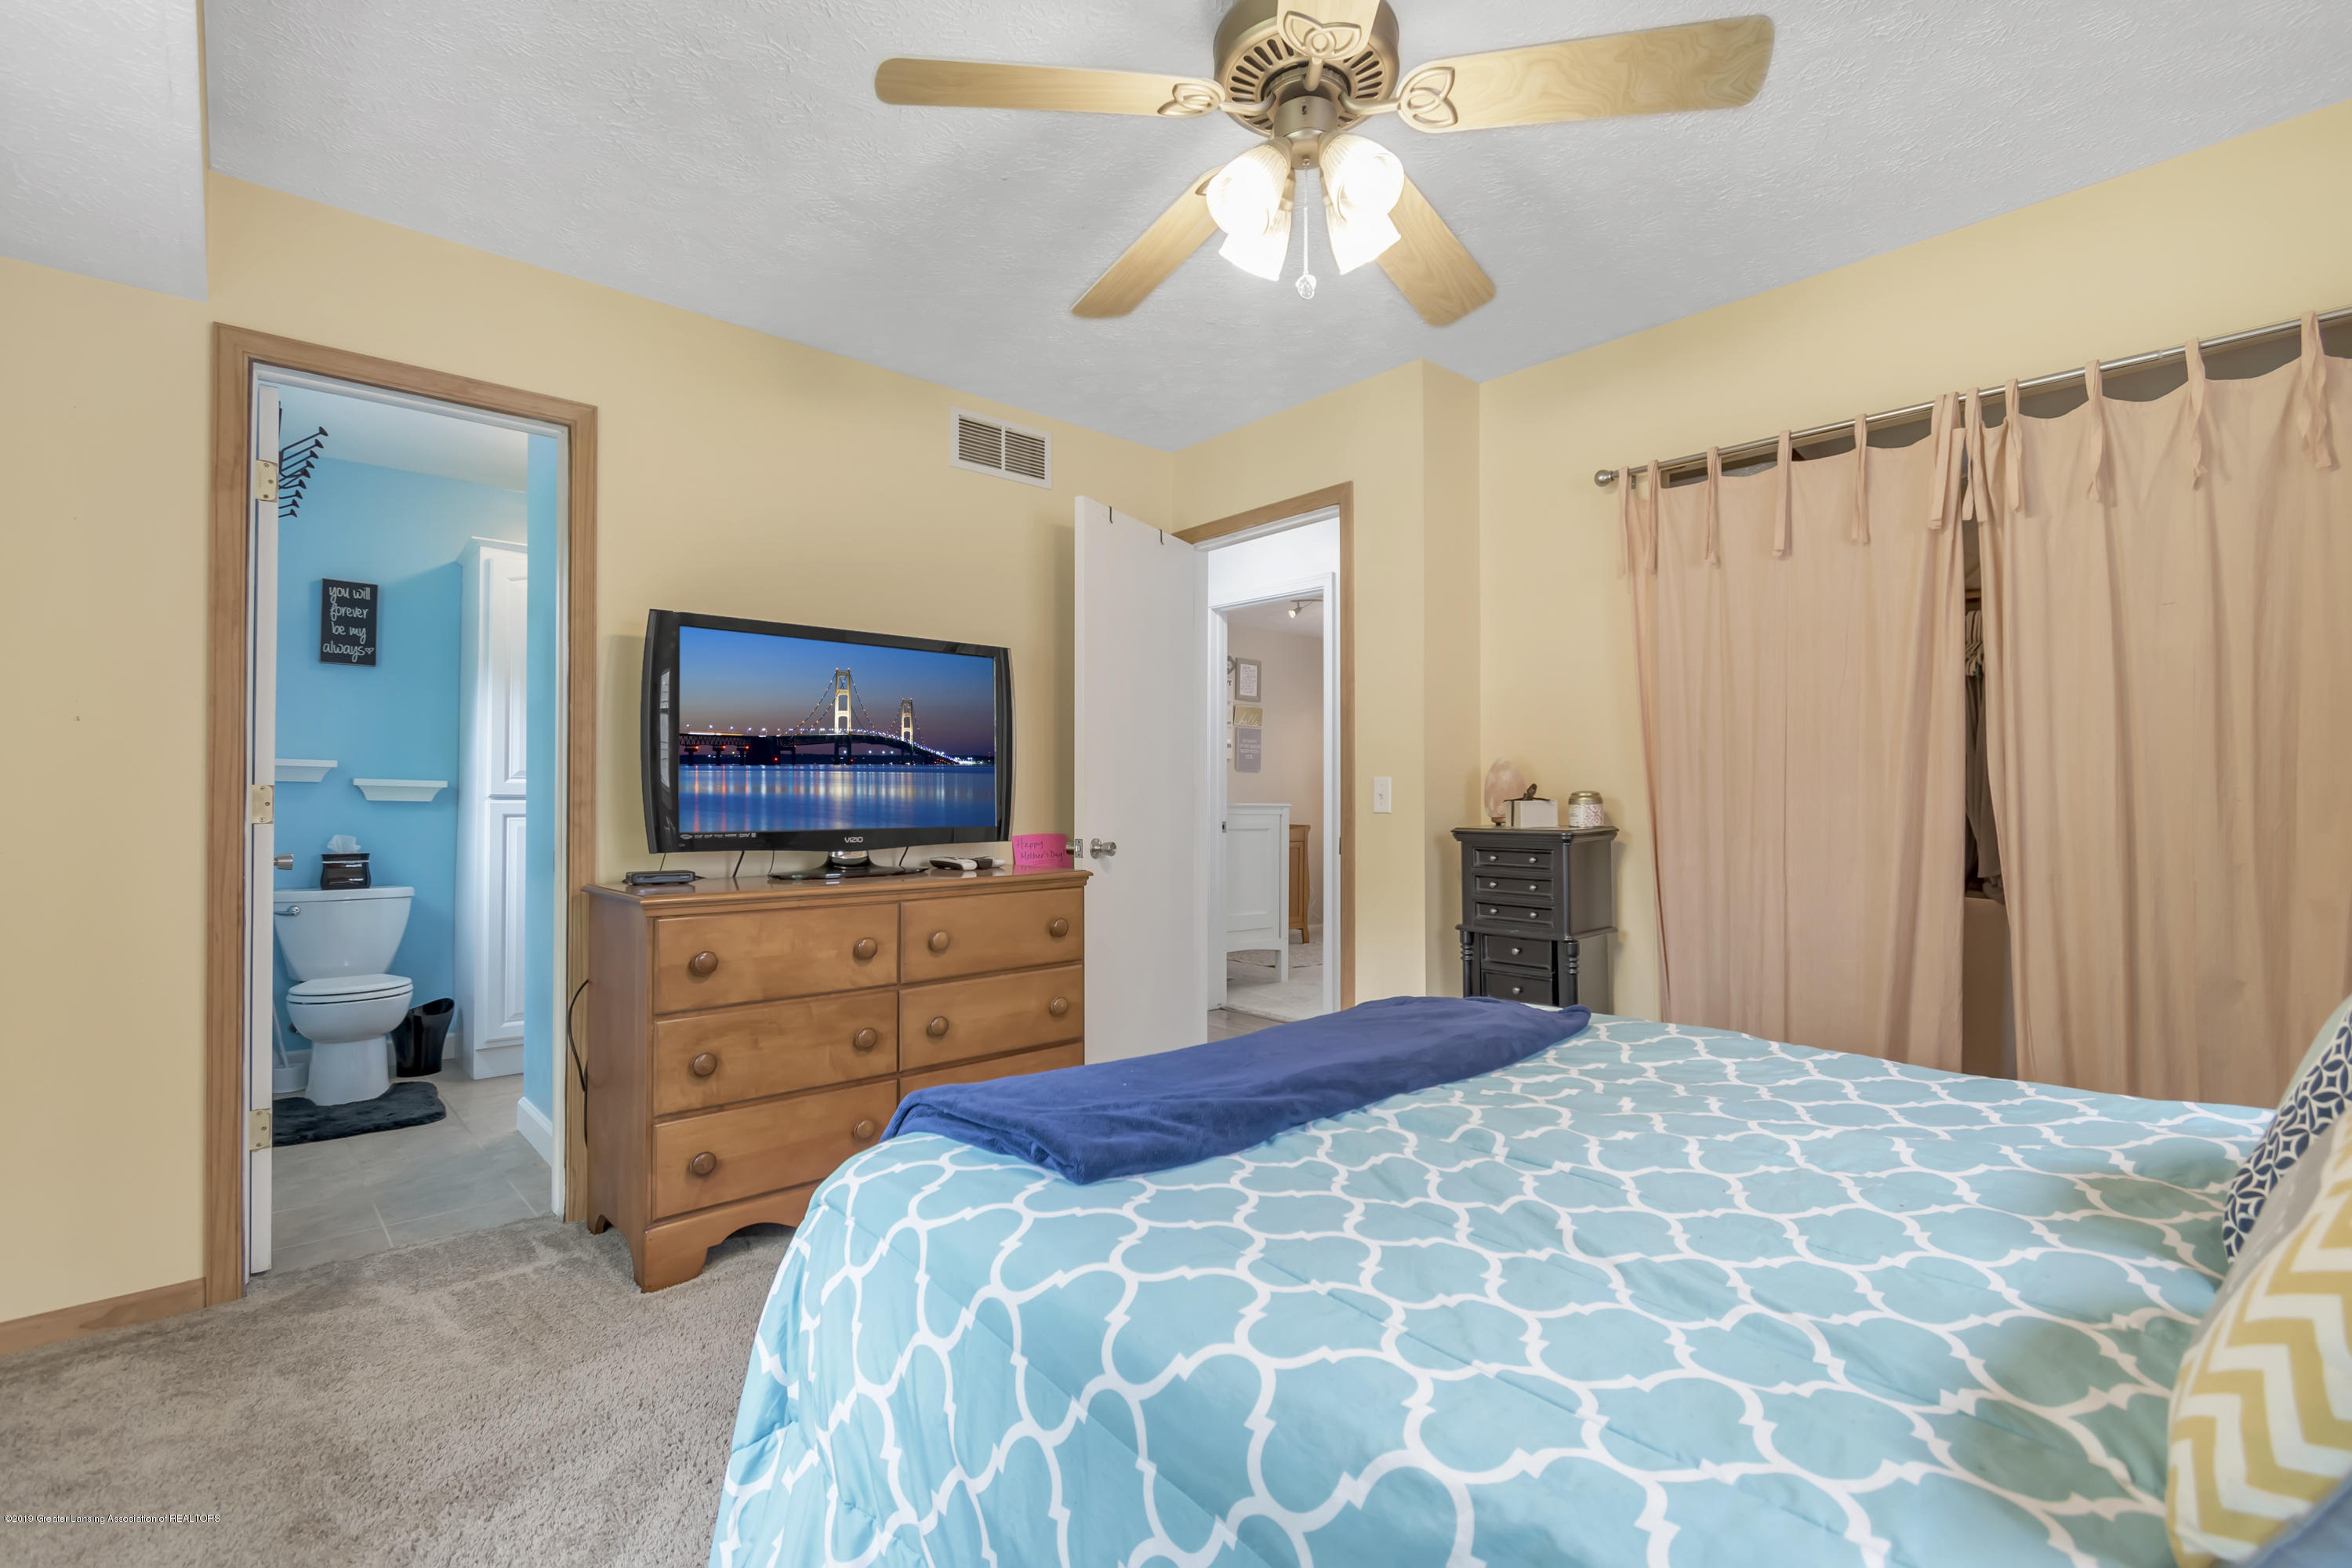 5736 Coulson Ct - 5736-Coulson-Ct-Lansing-MI-windowstill-2 - 19